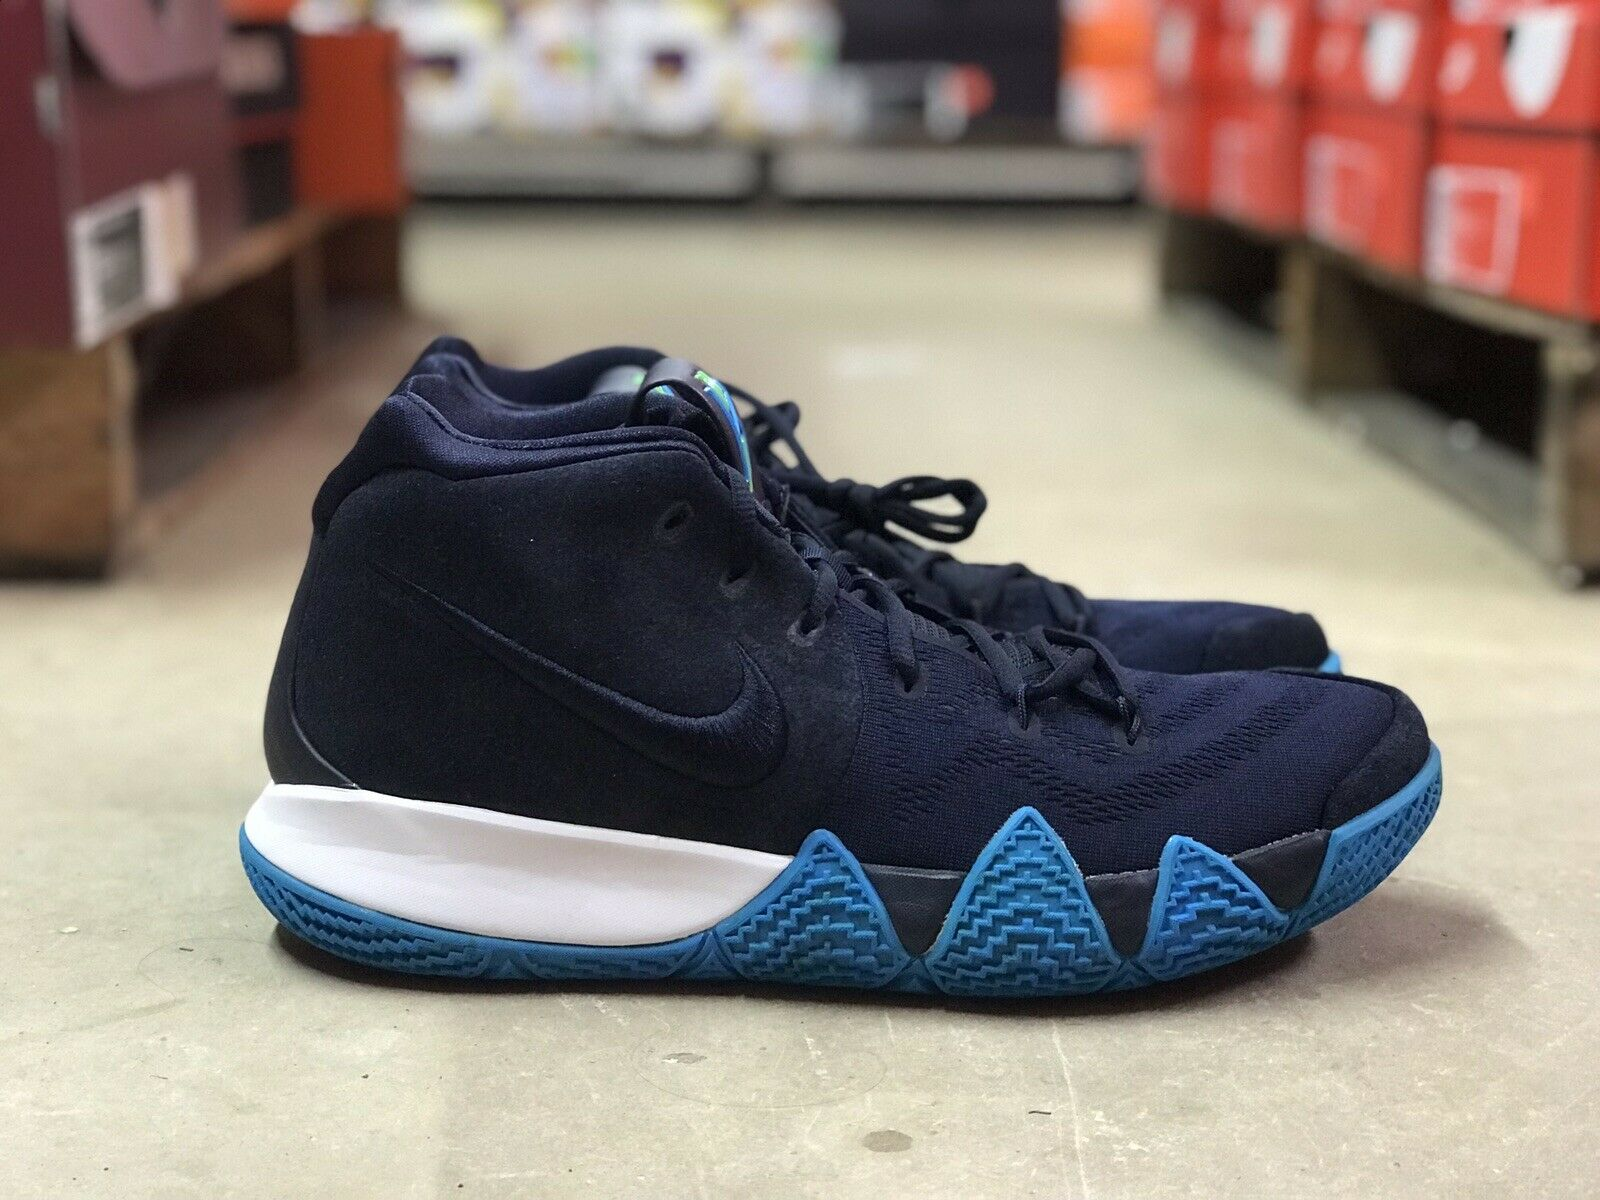 cheap for discount c4be9 eddfa Nike Kyrie 4 Think Twice Mens Basketball shoes shoes shoes blueee White 943806  401 NEW Sz